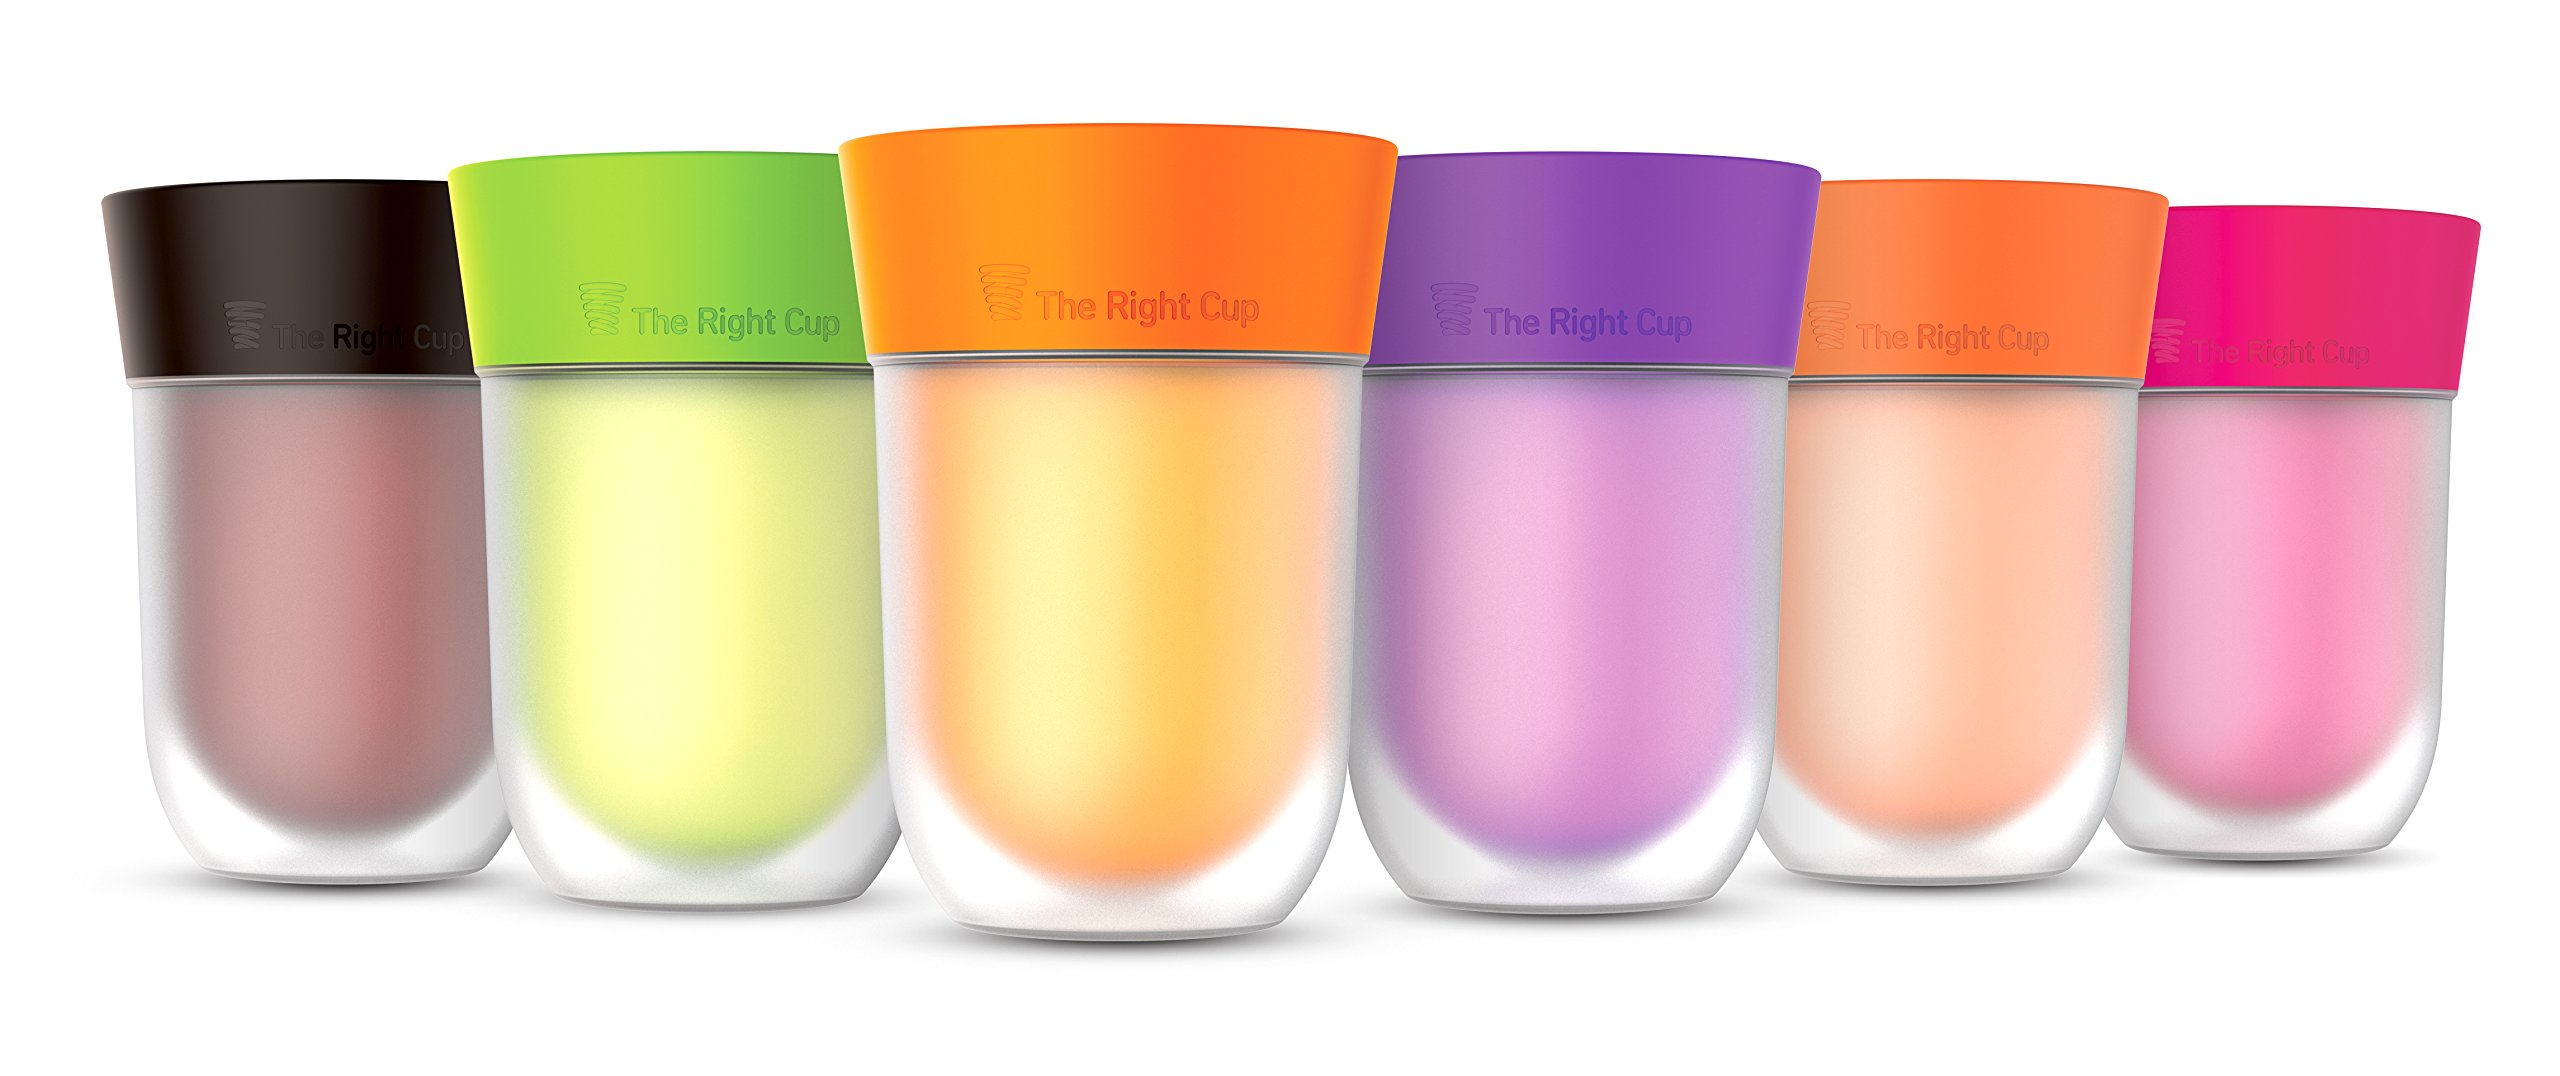 Flavor Enhancing water Cup- Pack of 6 flavored cups - Orange, Cola, Berry, Apple, Peach and Grape. Helps you drink water instead of soda. by The Right Cup by The Right Cup (Image #10)